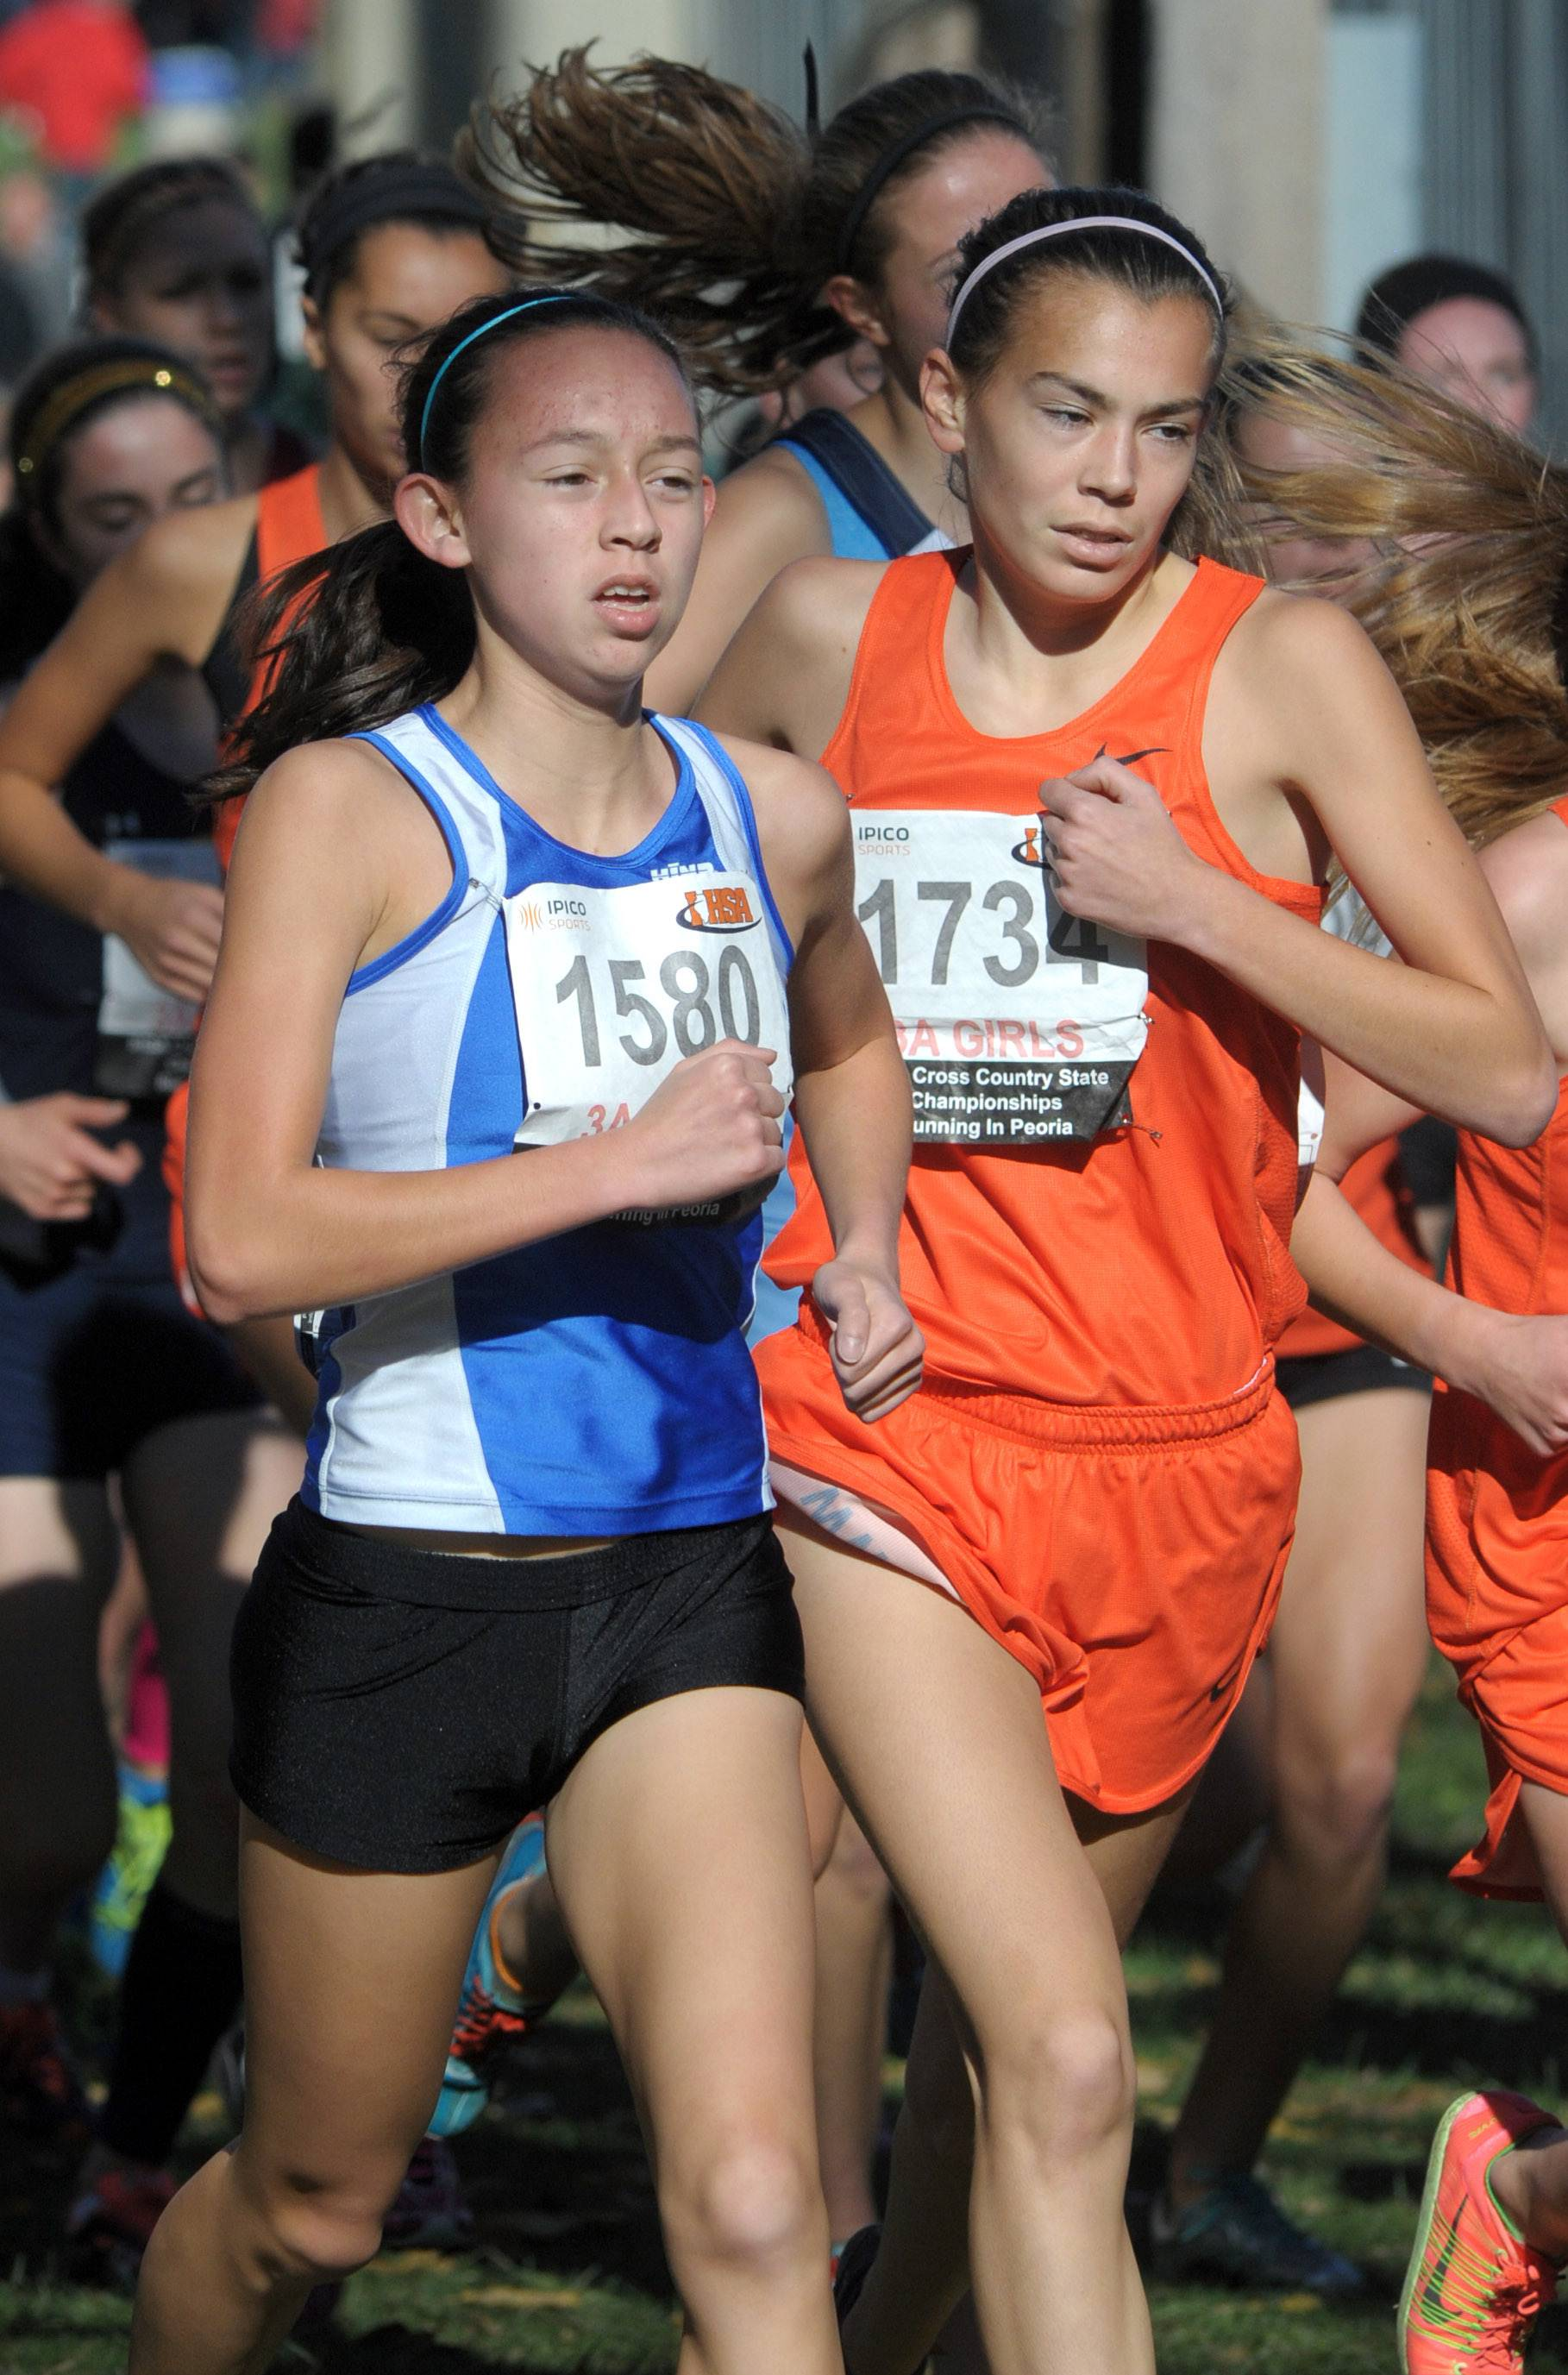 Lake Zurich's Kristie Houghton (1580) and Wheaton Warrenville South's Natalia Boettcher (7134) compete in the Class 3A state meet at Detweiller Park in Peoria last fall.